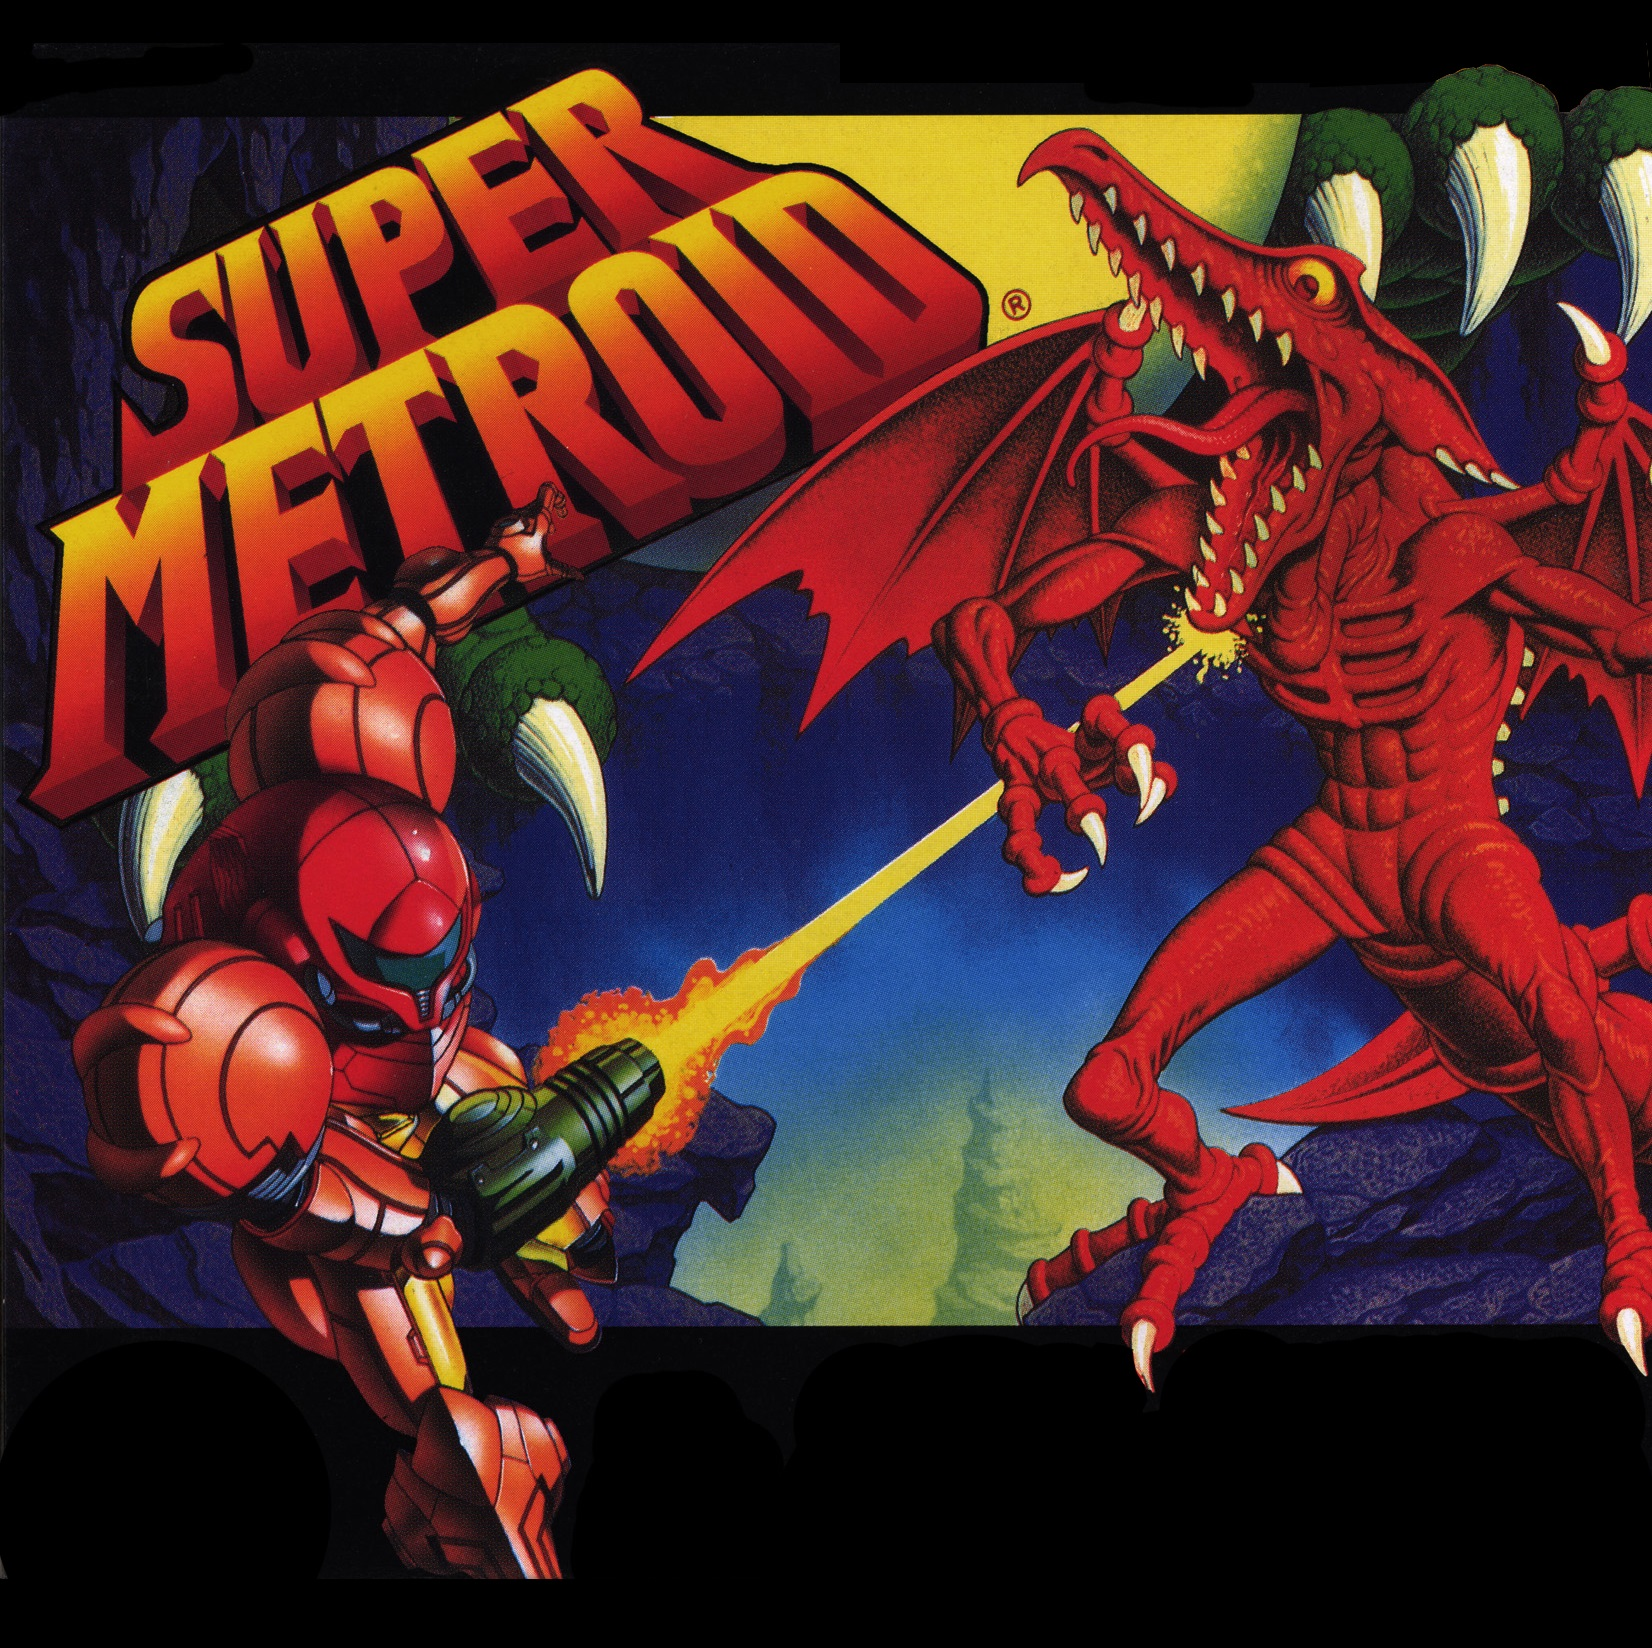 super metroid snes rom download